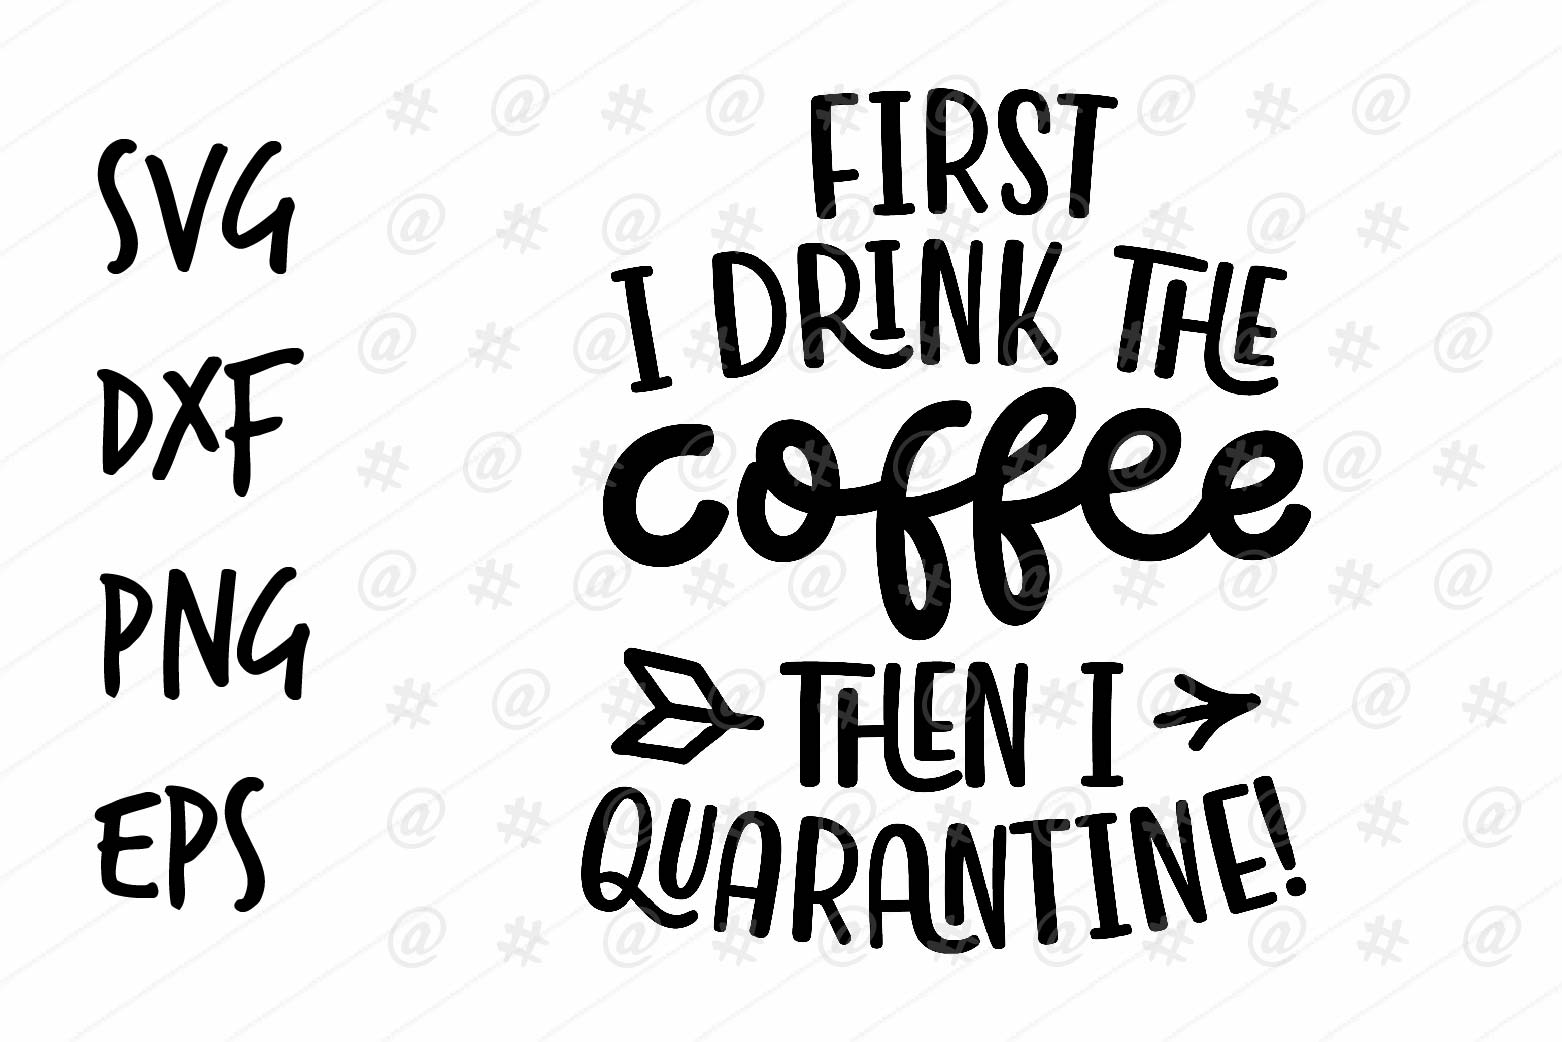 Download Free First Drink Coffee Then I Quarantine Graphic By Spoonyprint for Cricut Explore, Silhouette and other cutting machines.